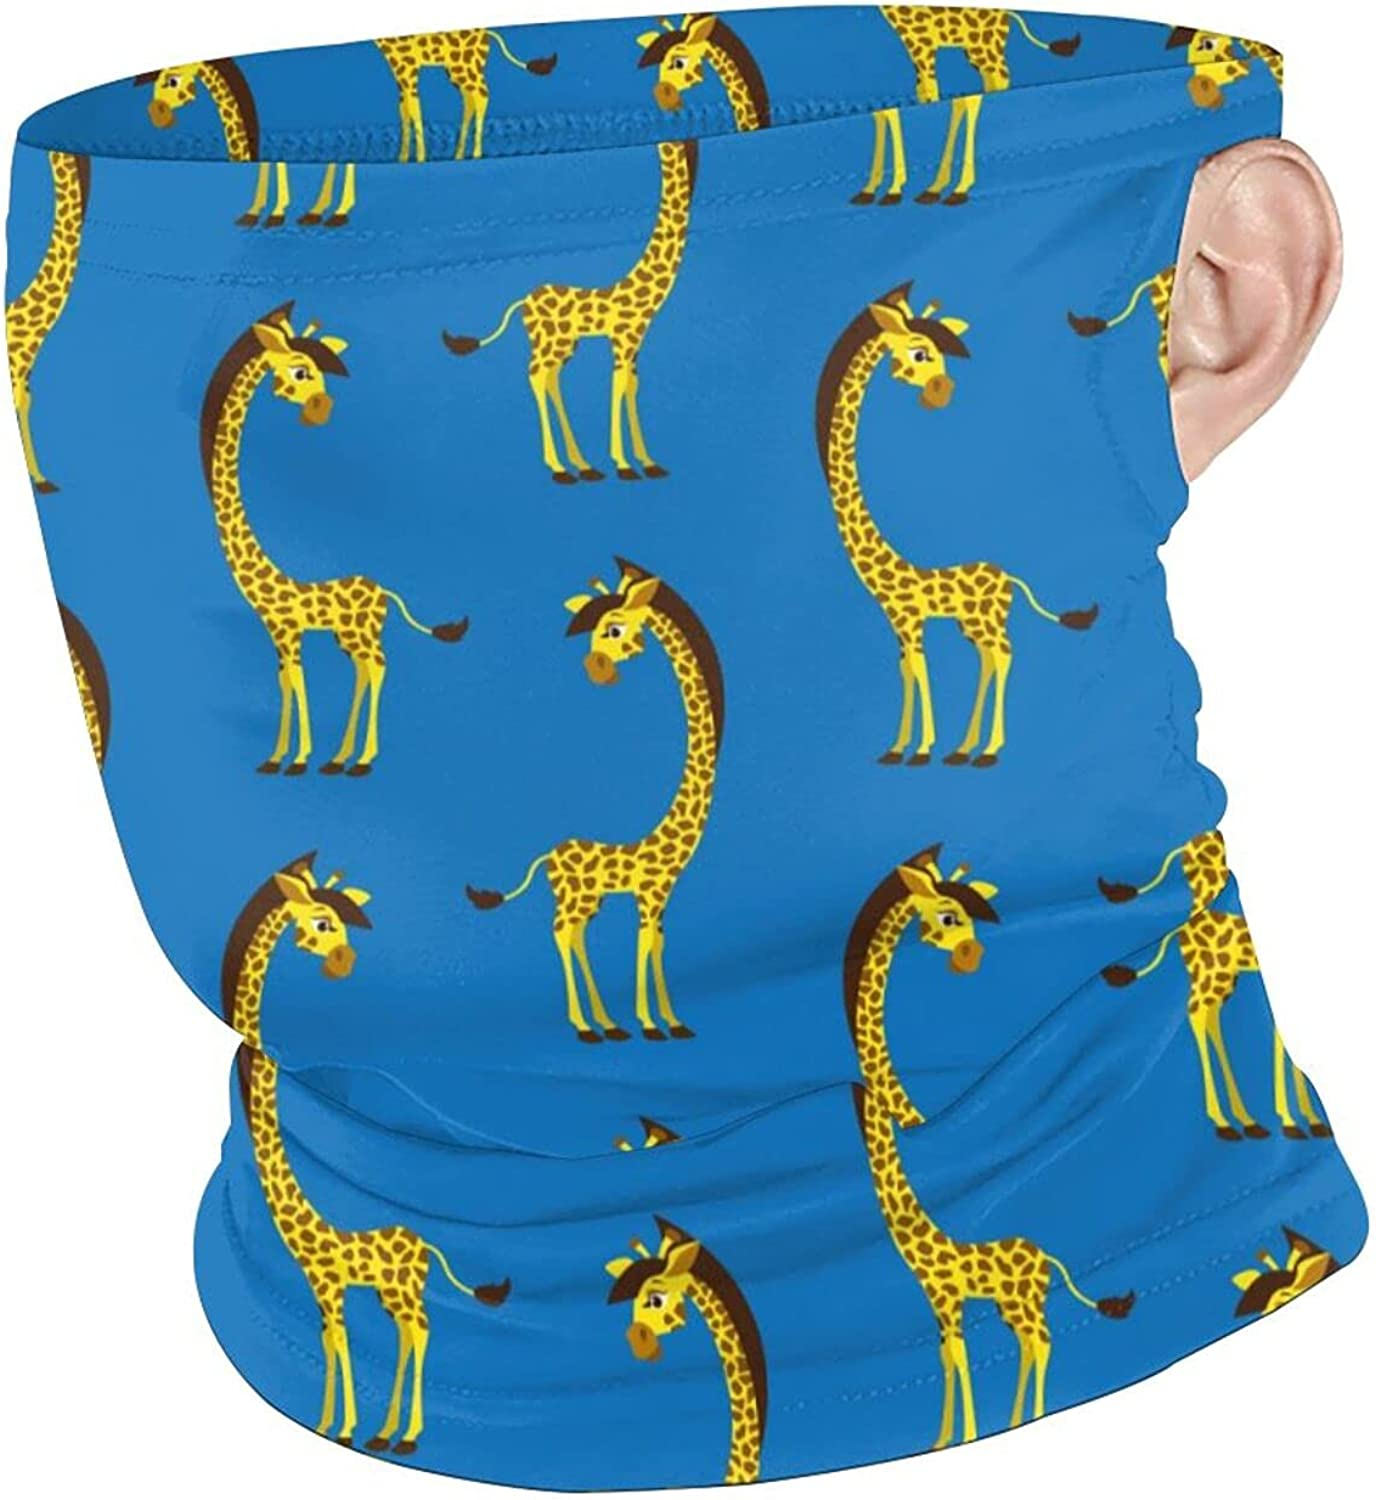 Colorful Cats Headwear Neck Gaiter Headband Bandana Magic Free Shipping New We OFFer at cheap prices Scarf